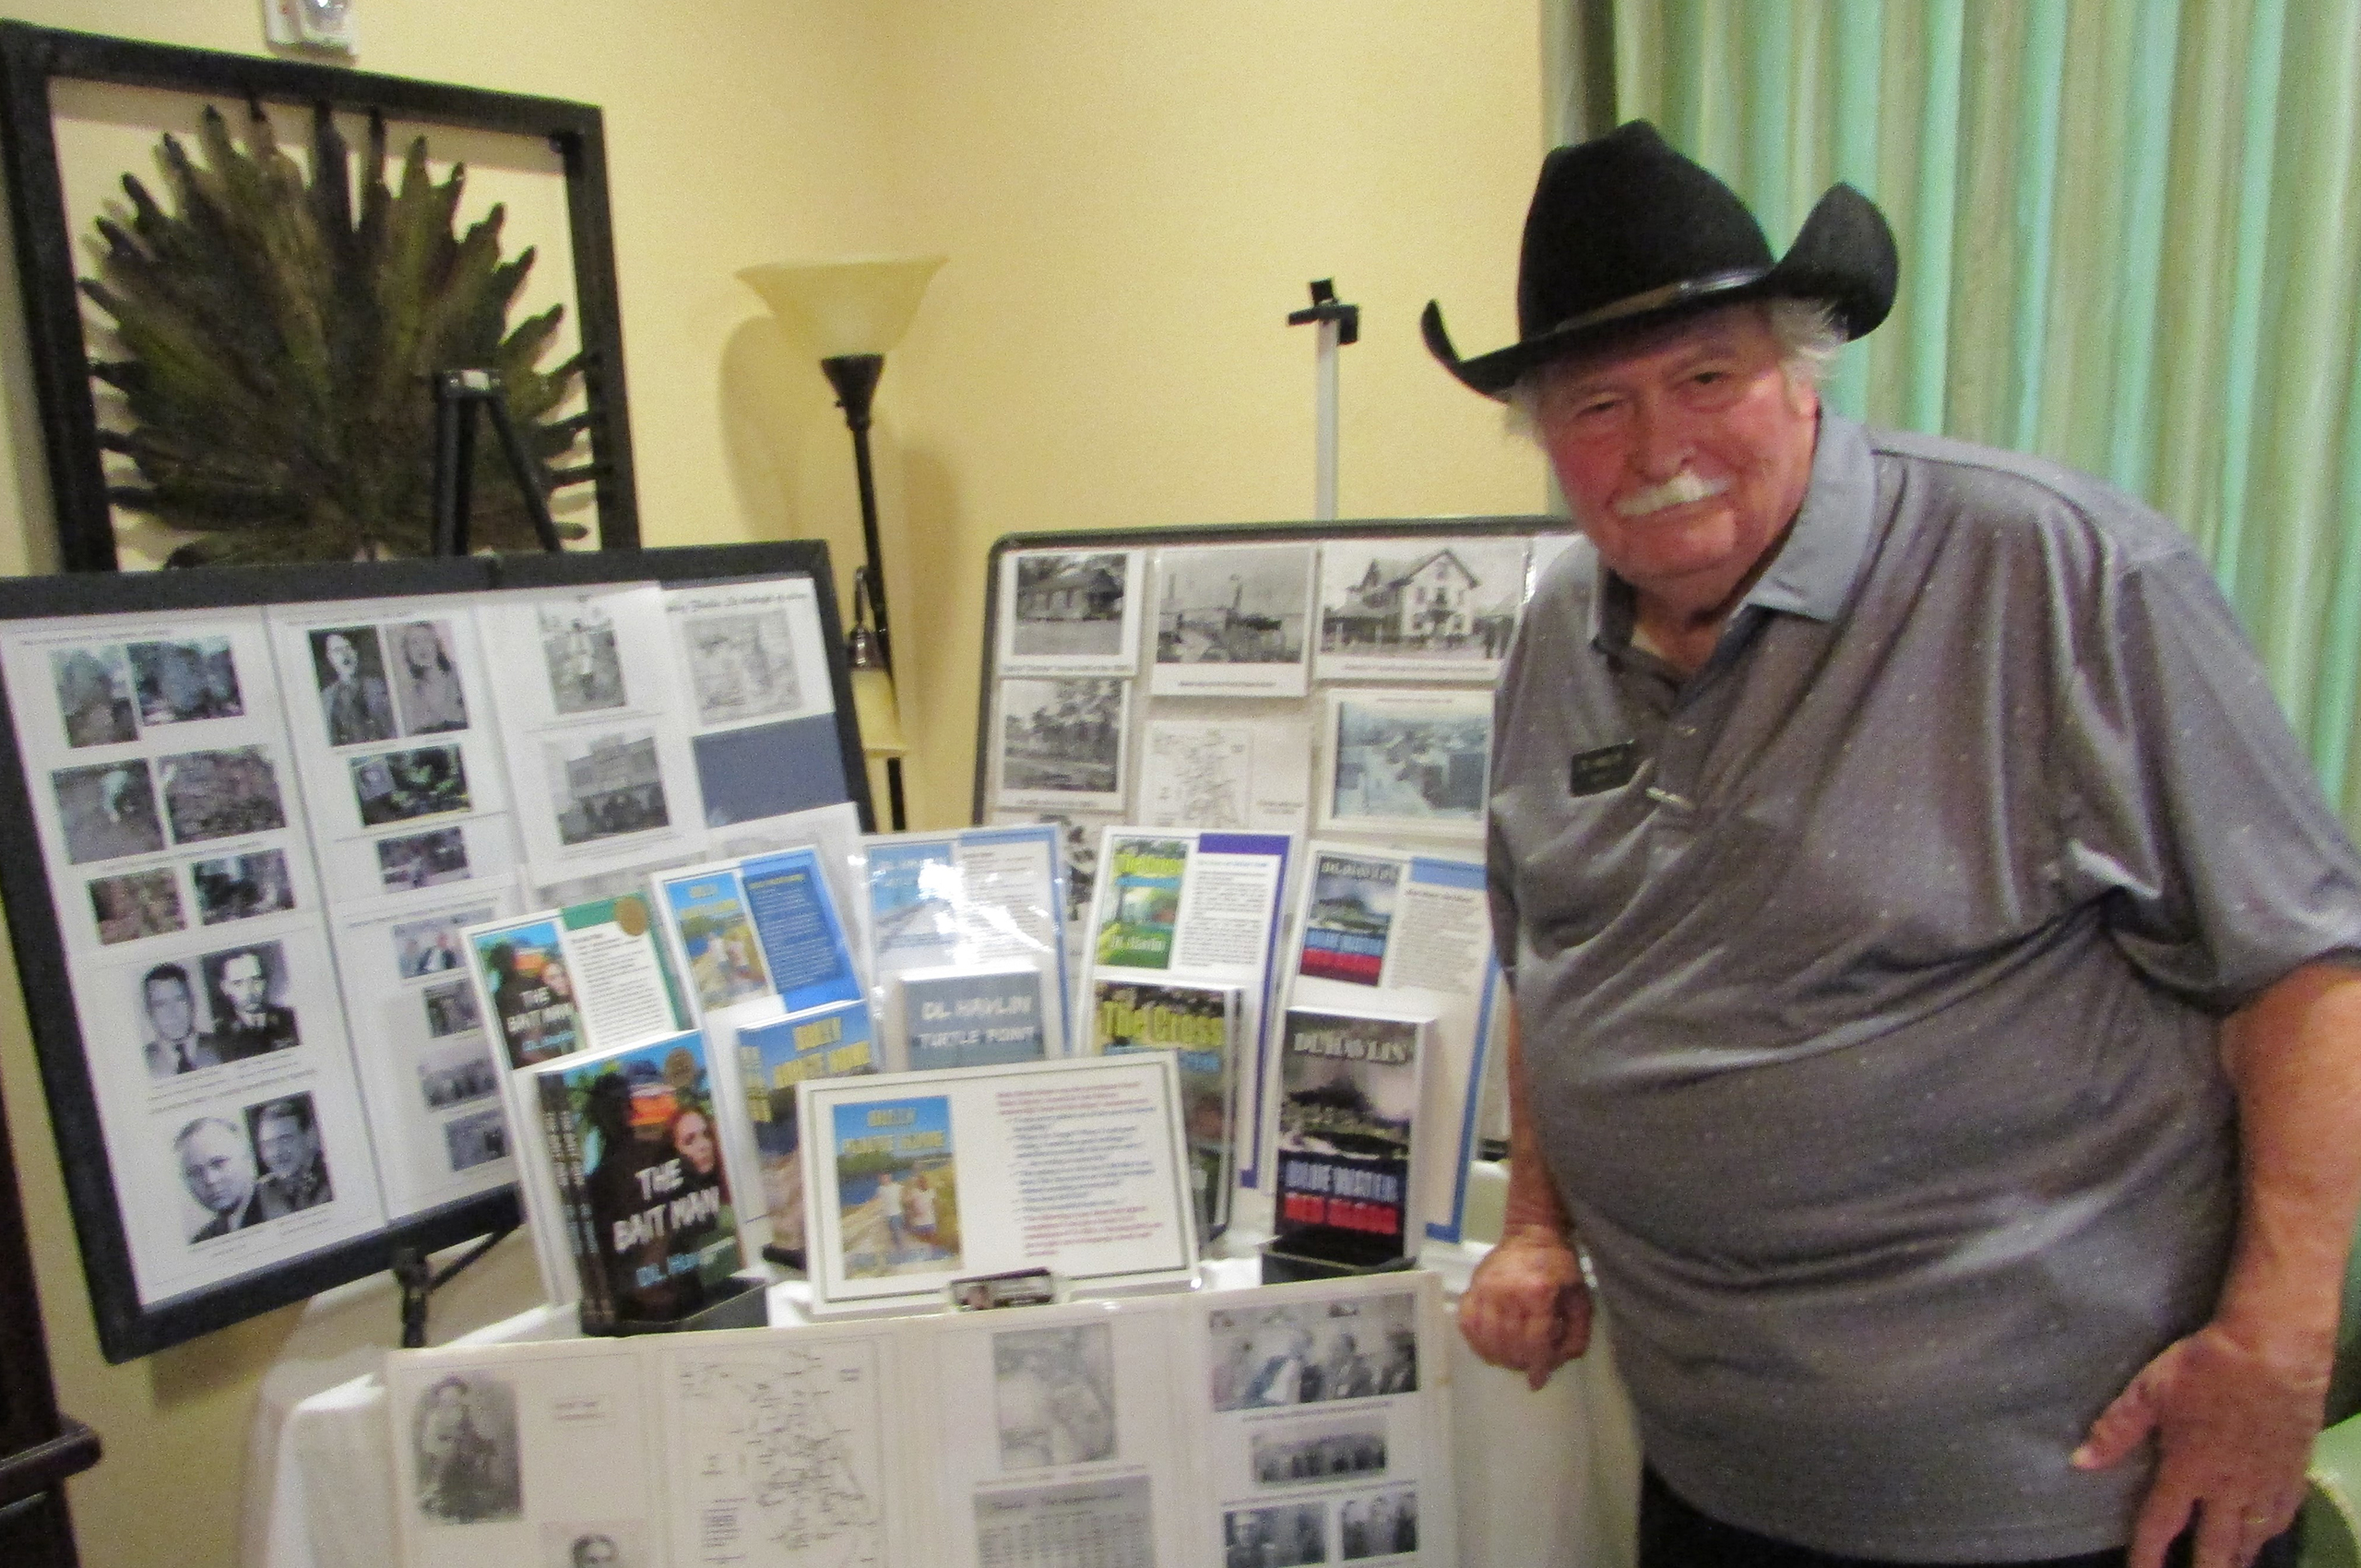 Residents share their passions